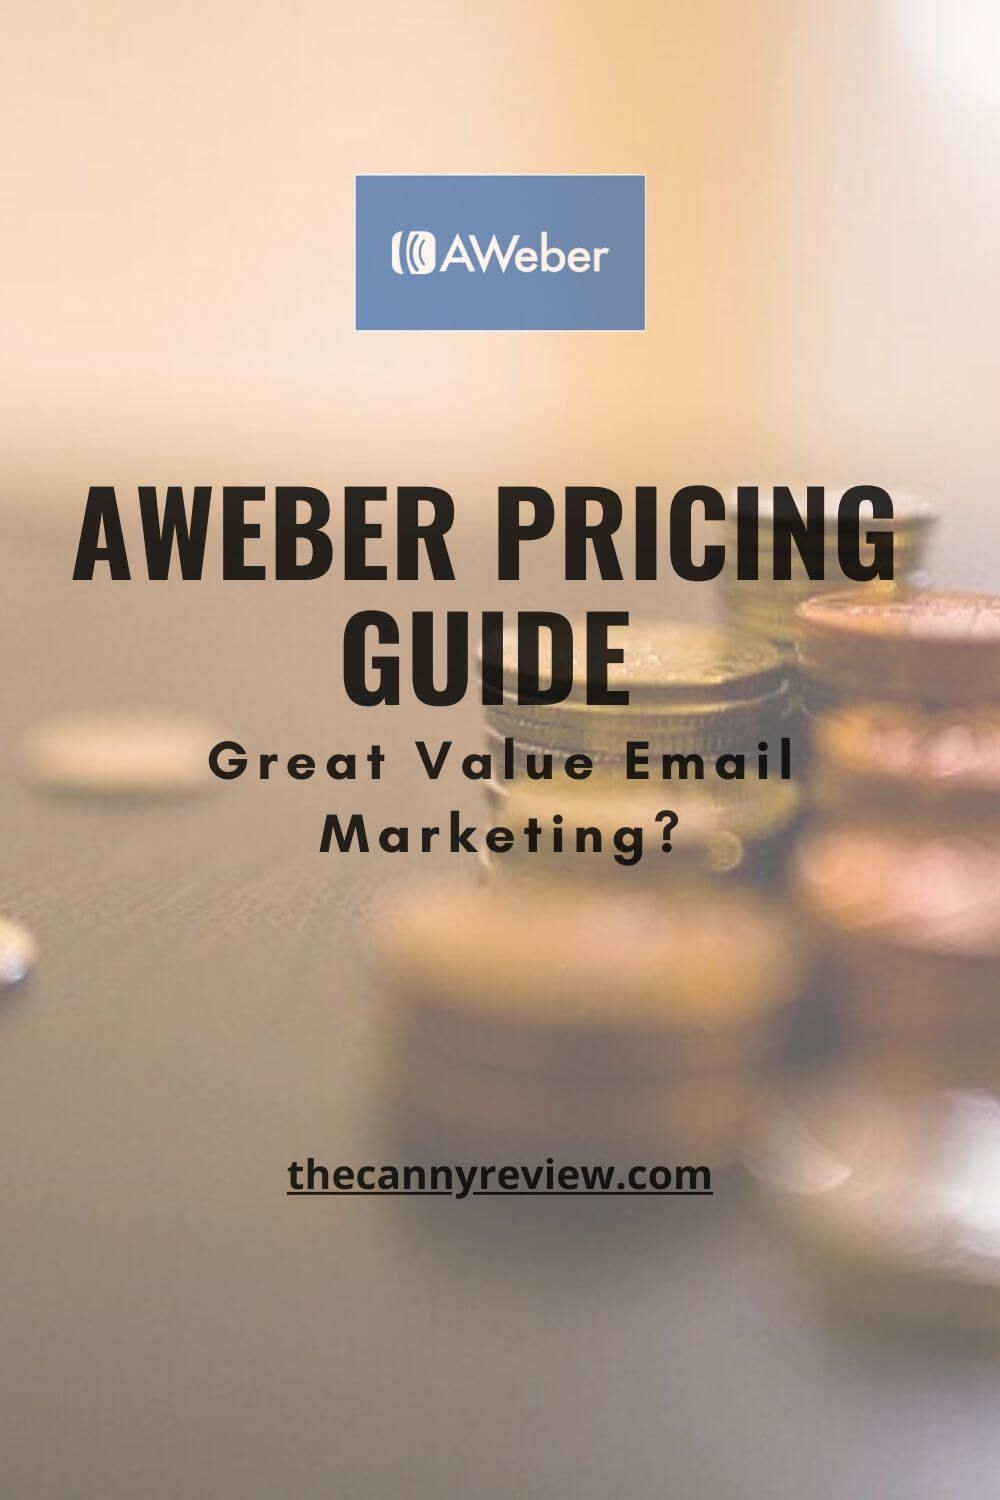 Aweber Plans and Pricing - Get a Right Plan at Actual Price 2021